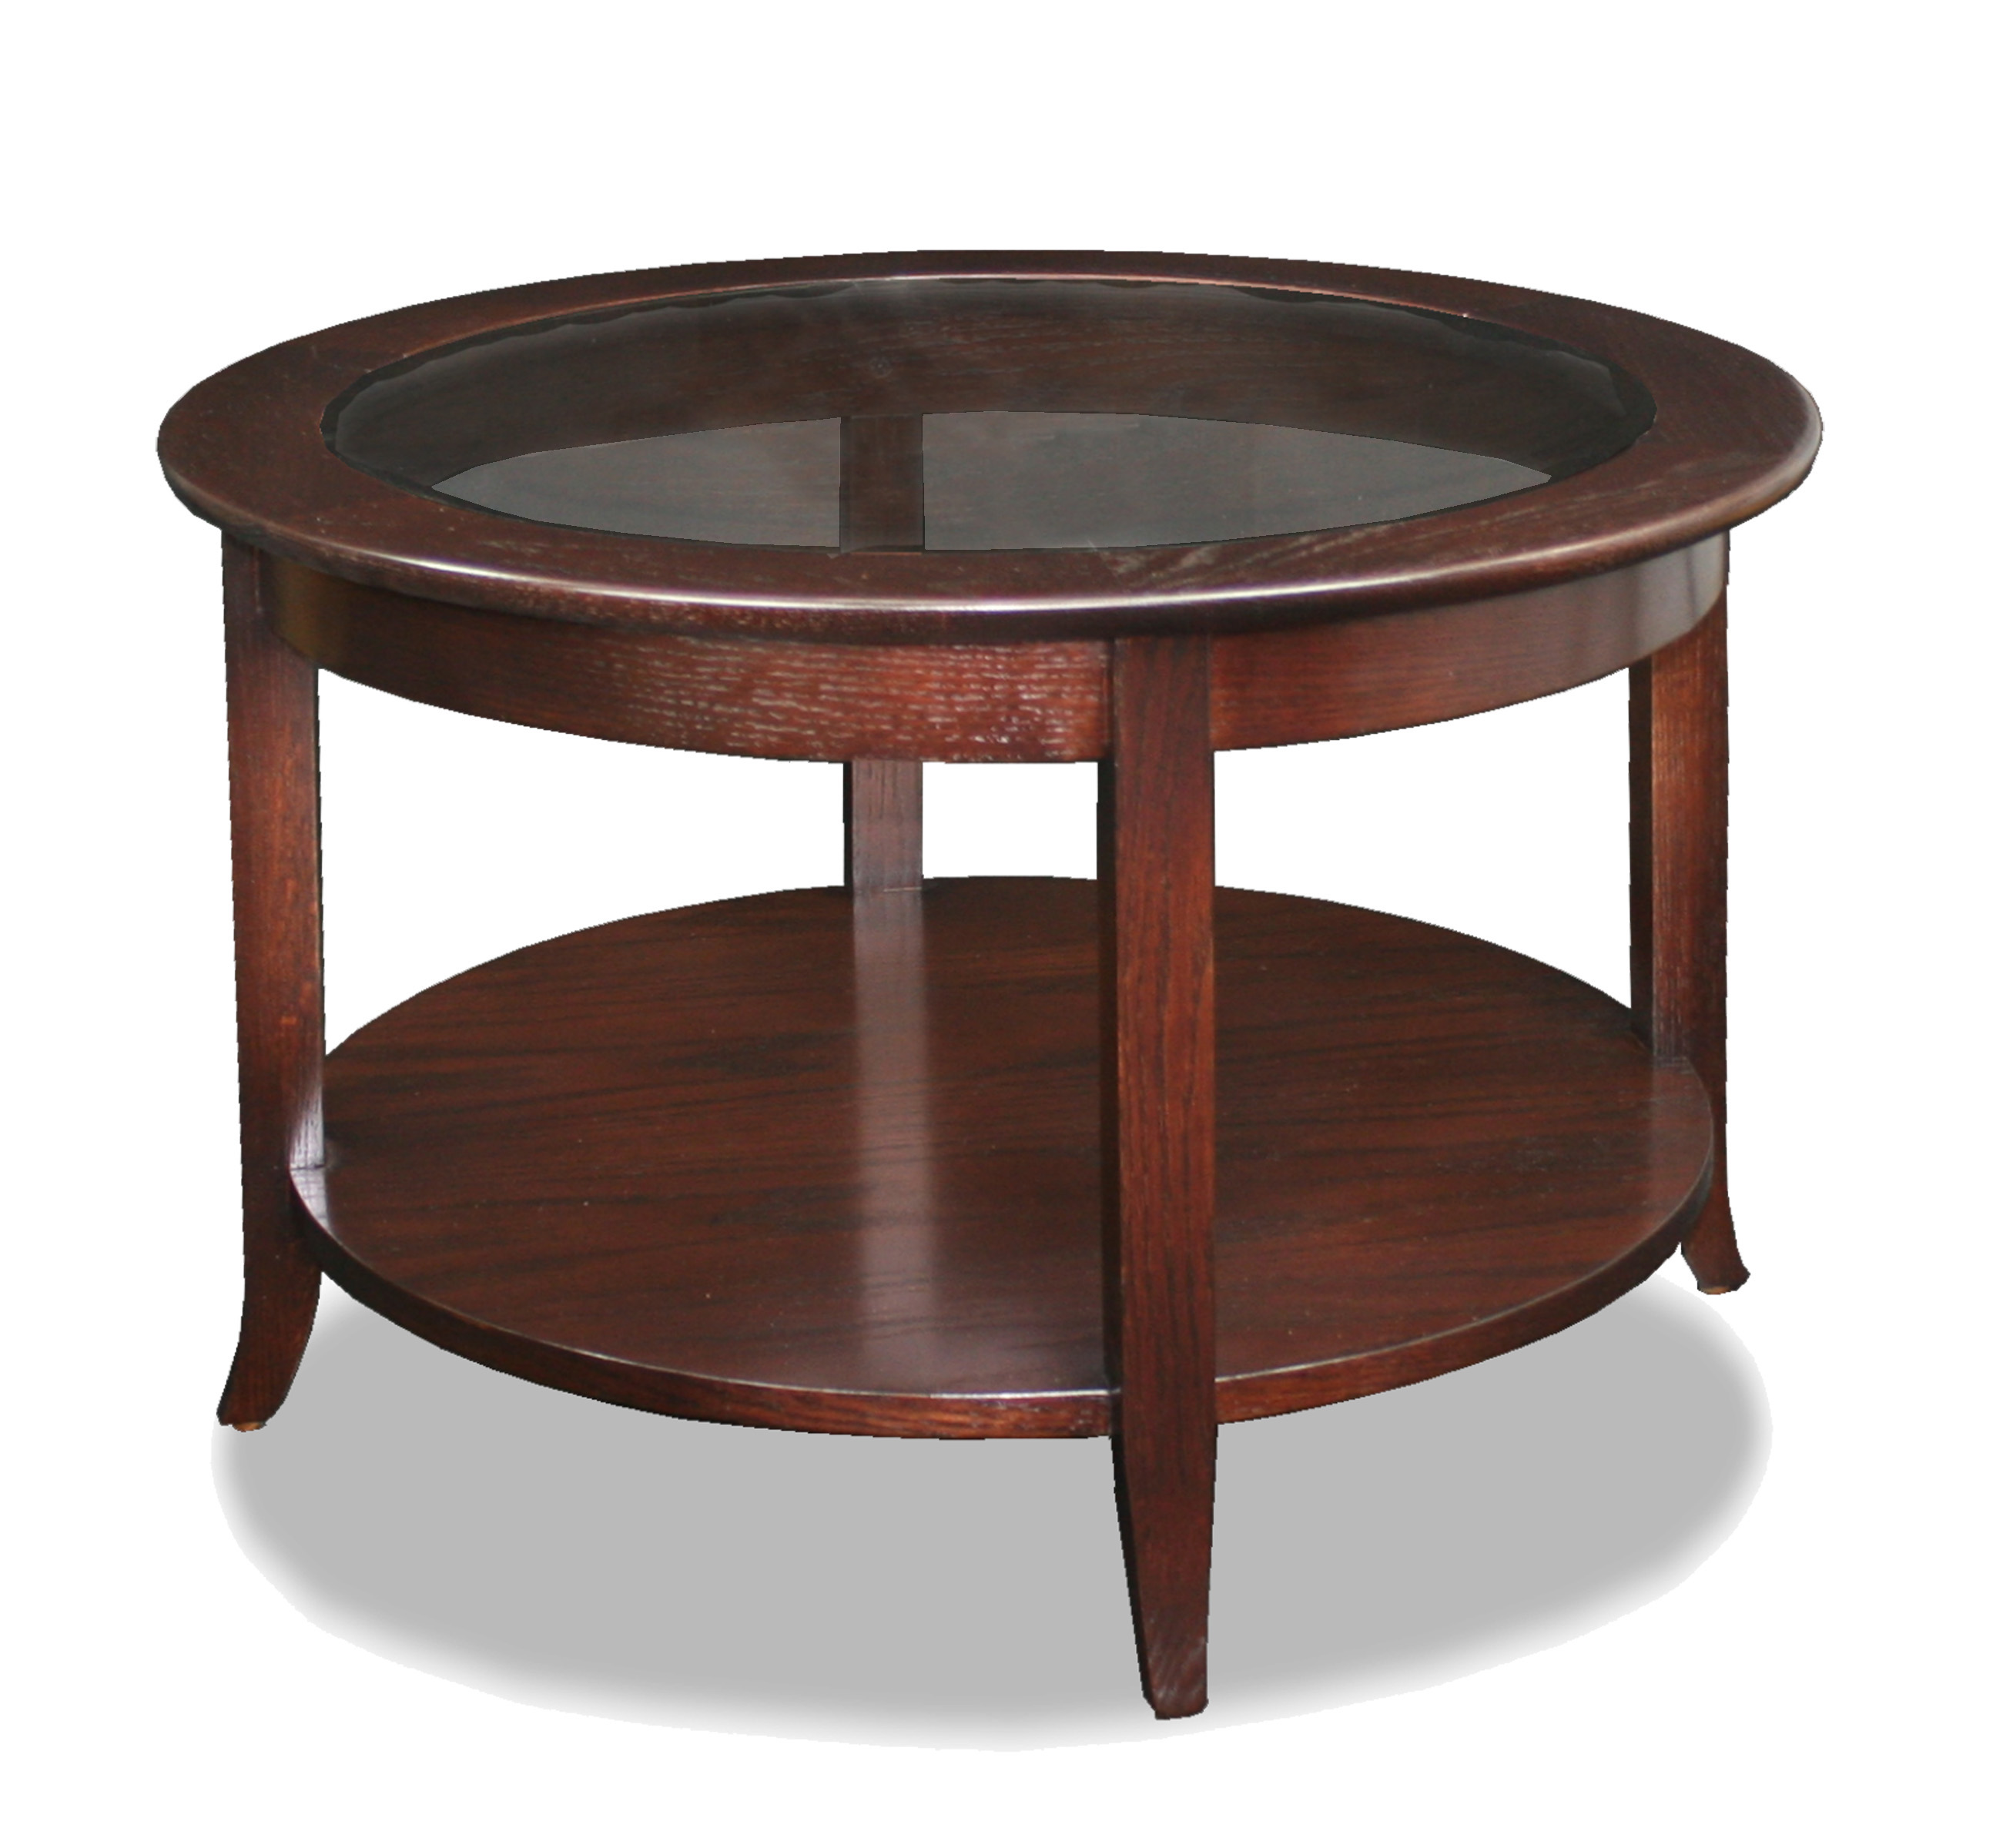 Best 10 of Wood Glass Coffee Tables Round And Square